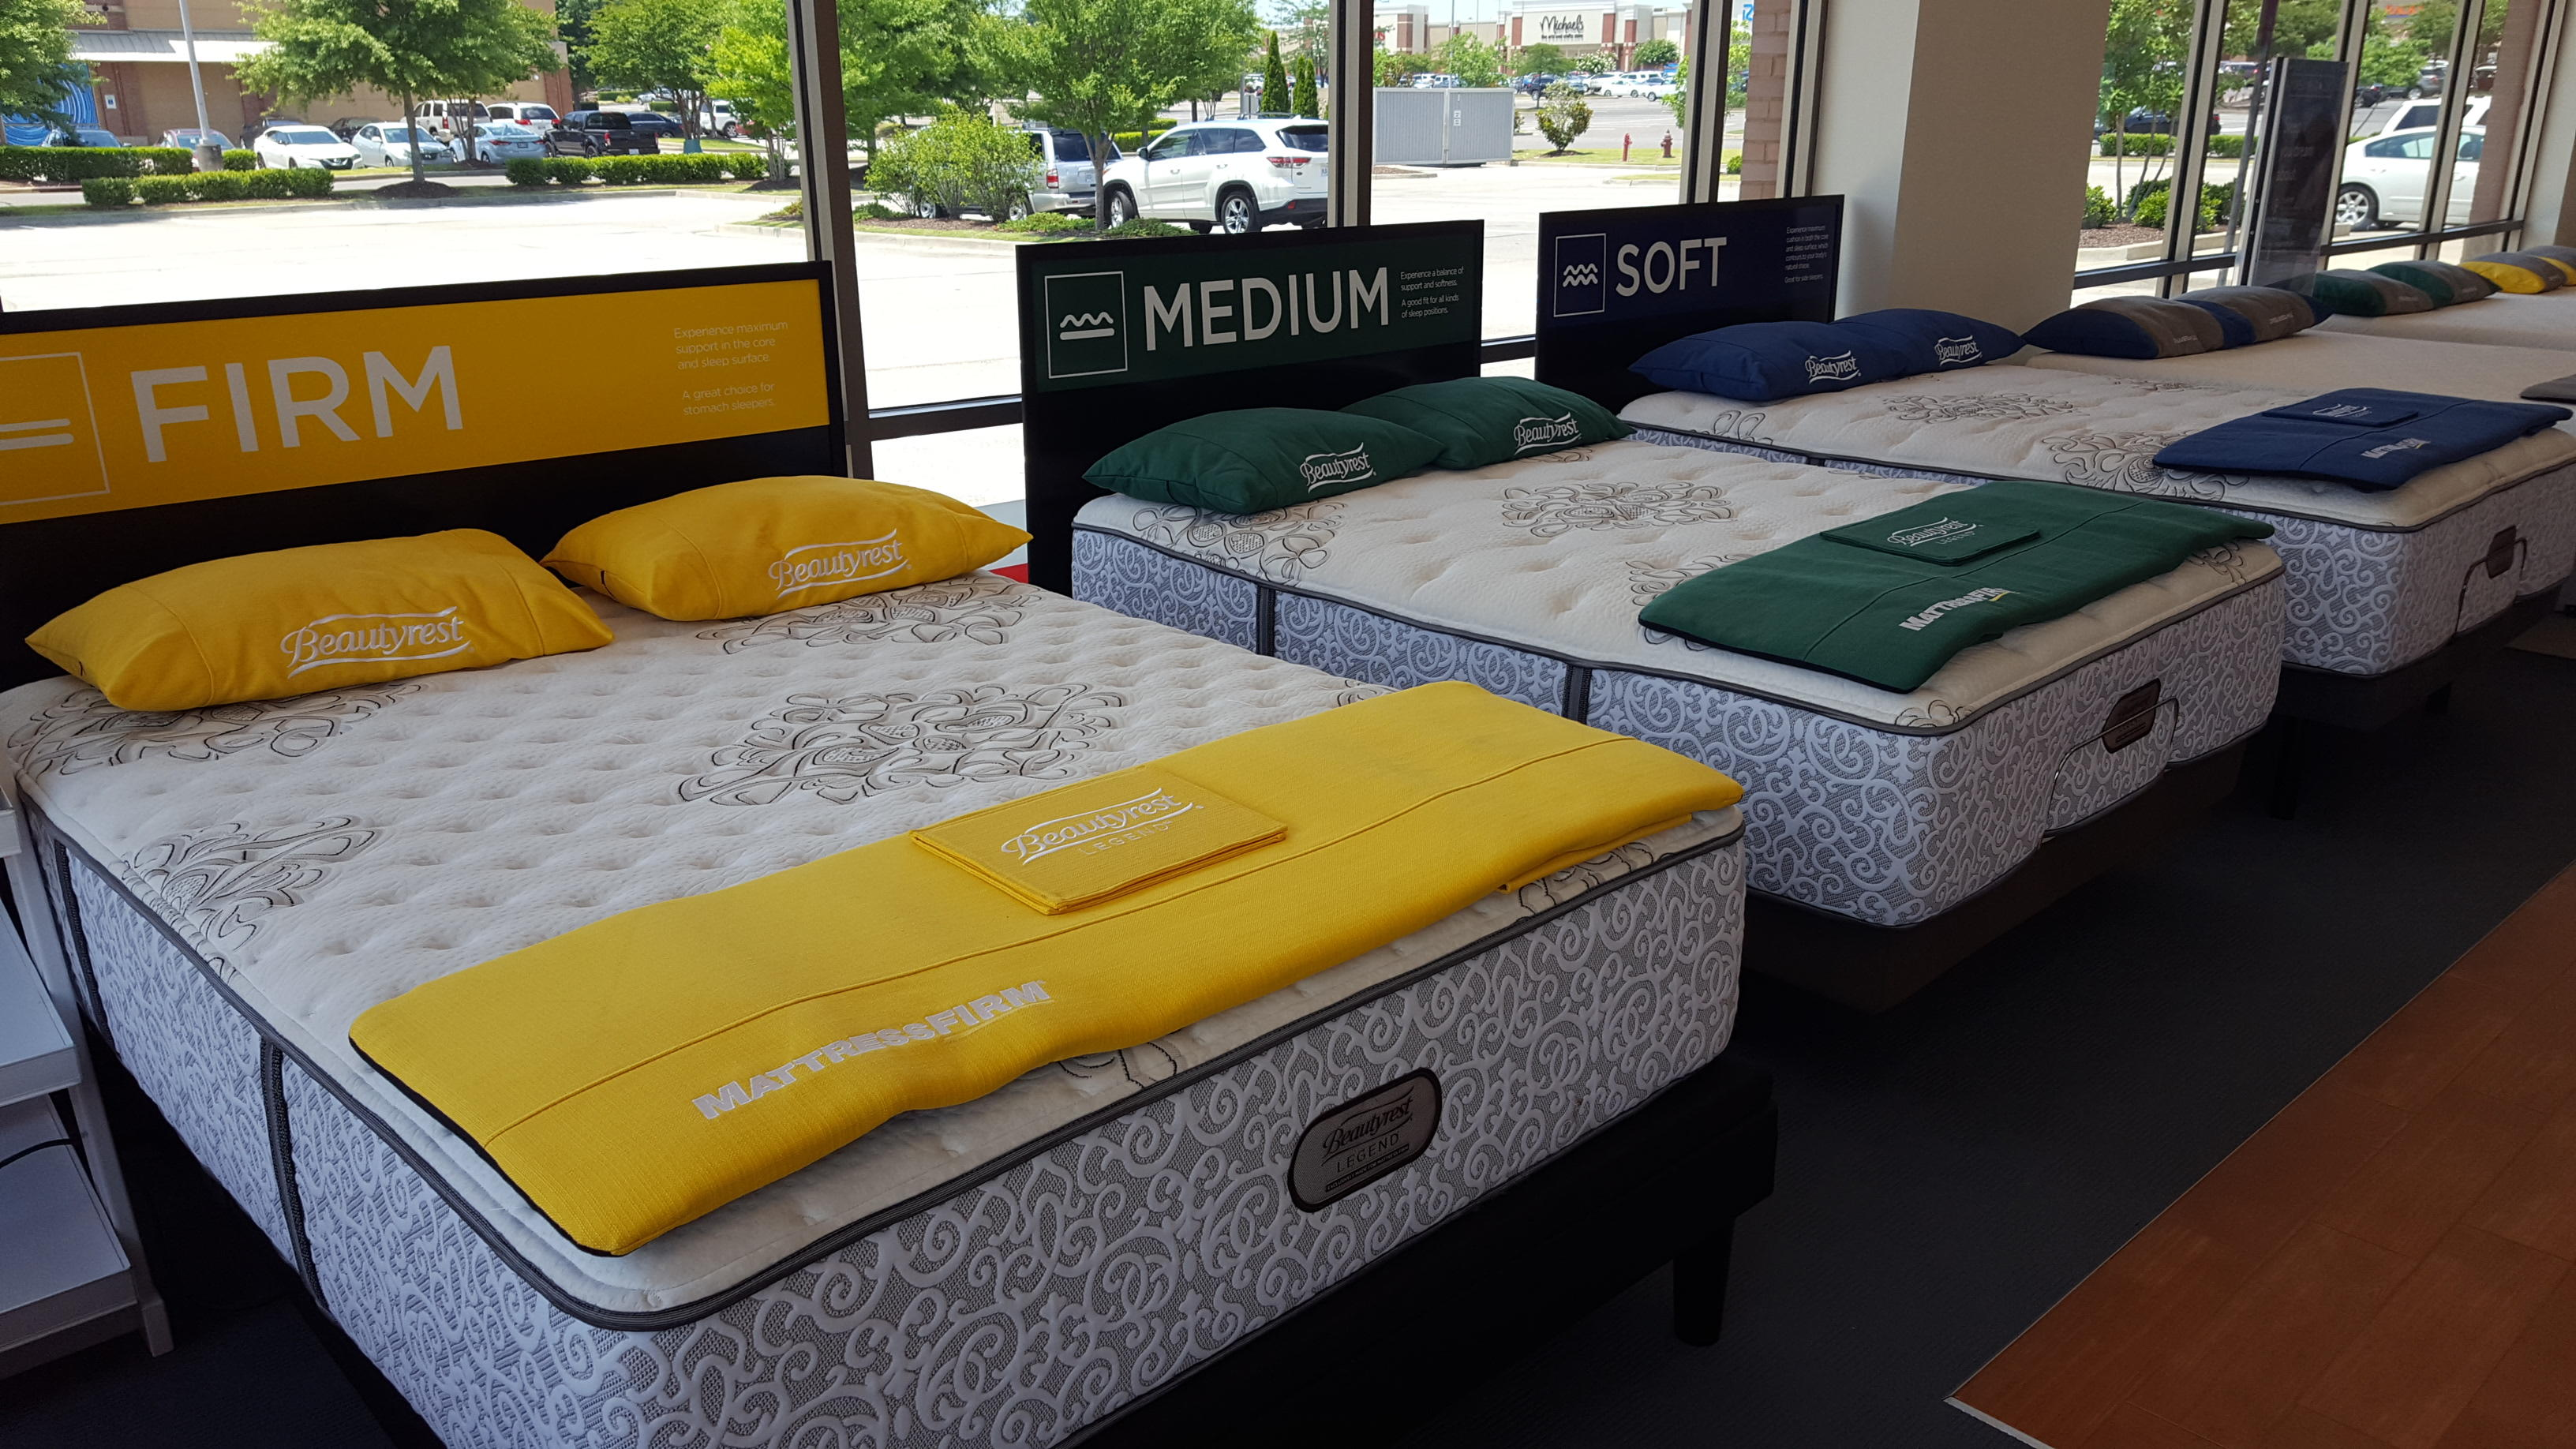 Mattress Firm Wedge Olive Branch image 6